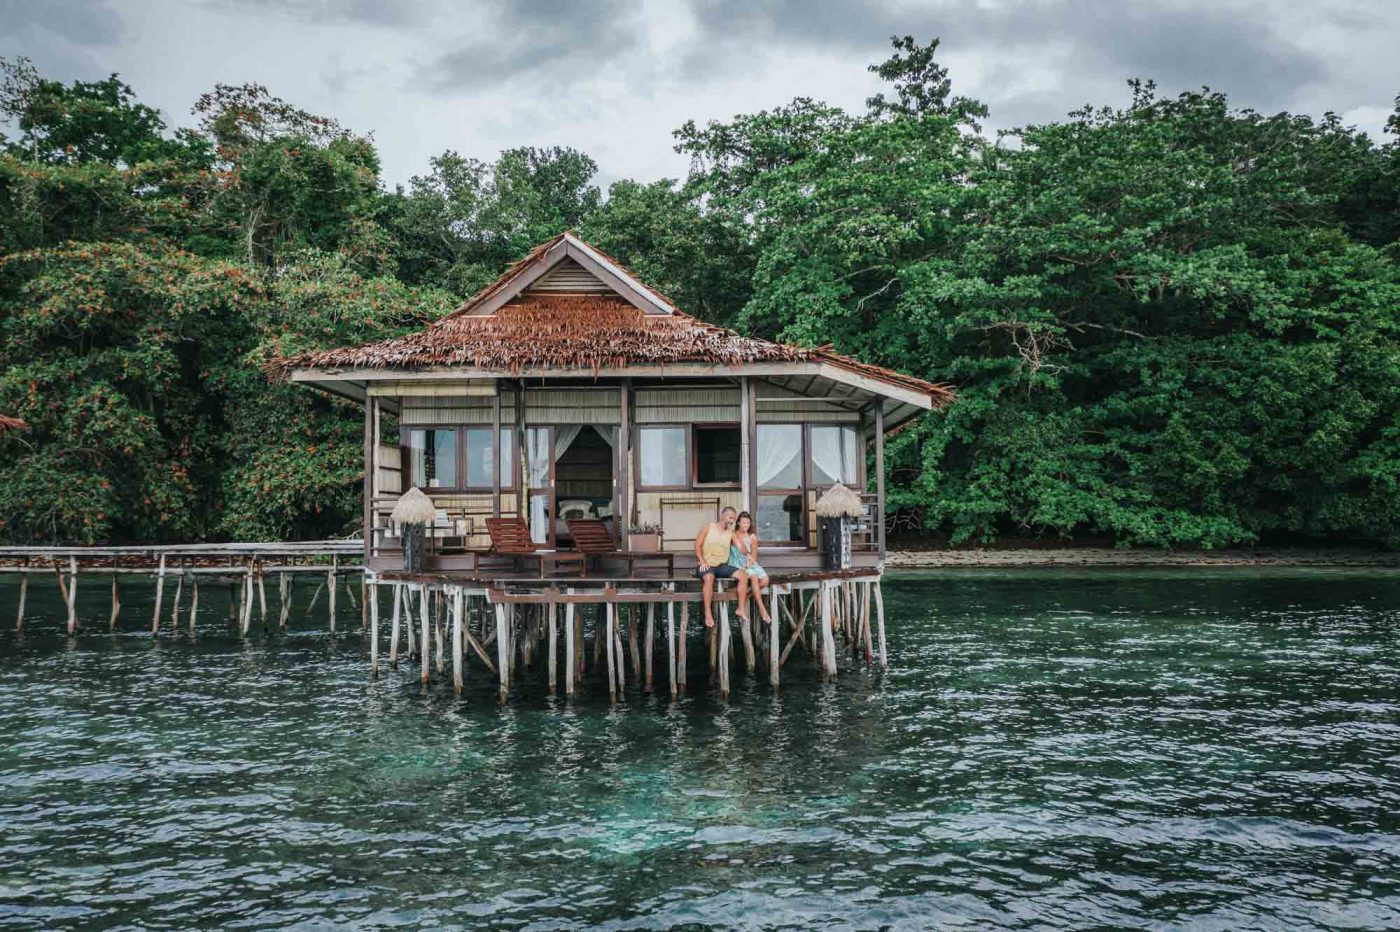 Our Deluxe Bungalow at the Papua Paradise Eco Resort, Raja Ampat, Indonesia